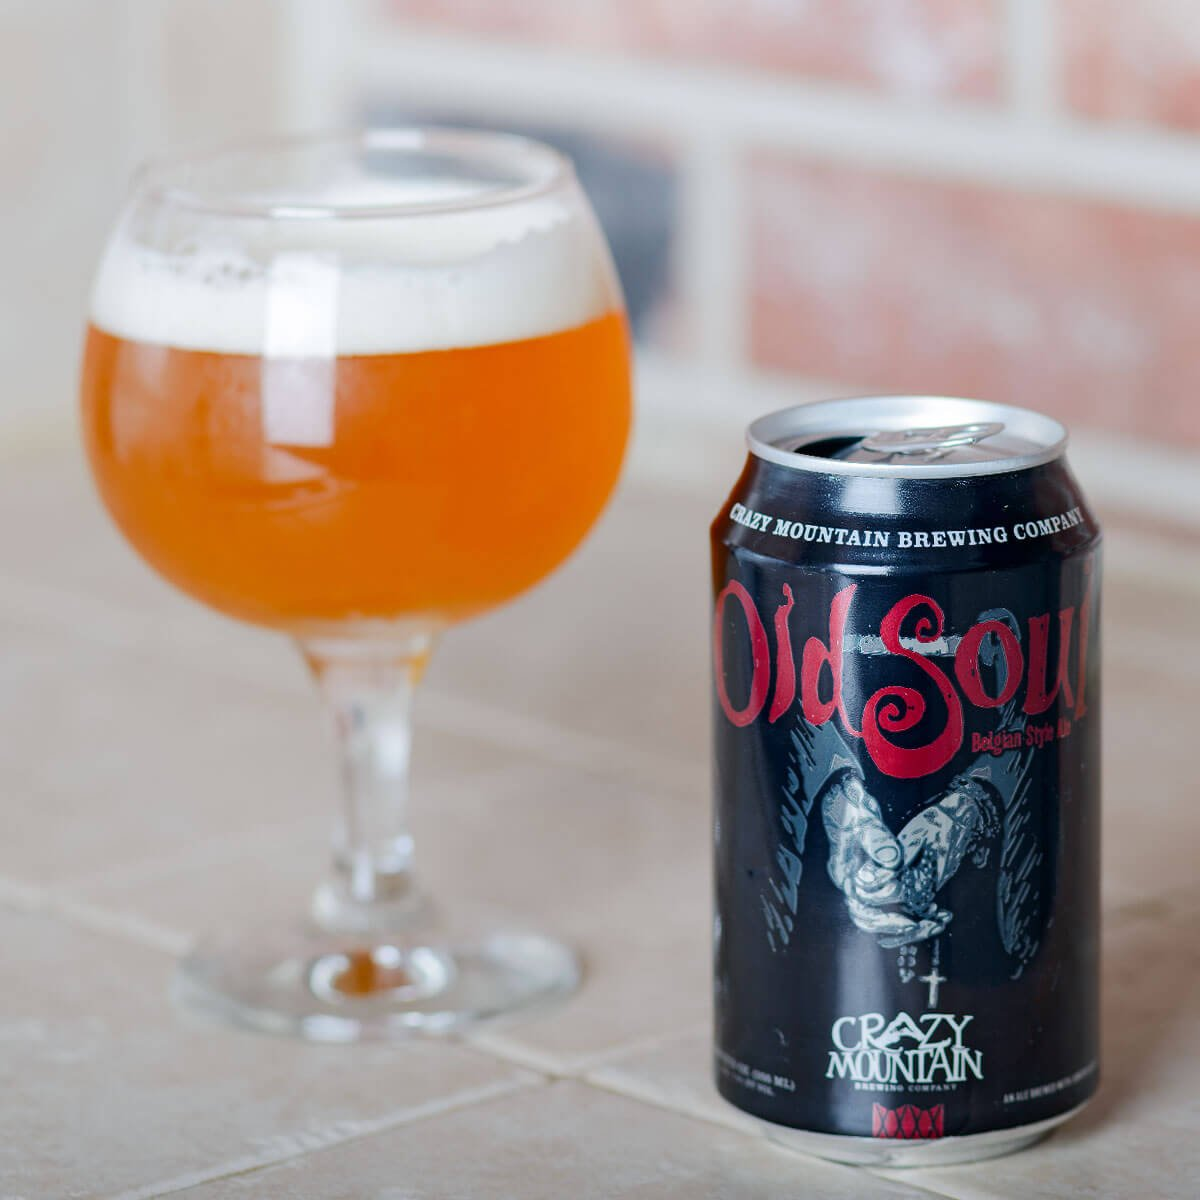 Old Soul Belgian-style Ale, a Belgian-style Strong Pale Ale by Crazy Mountain Brewing Company